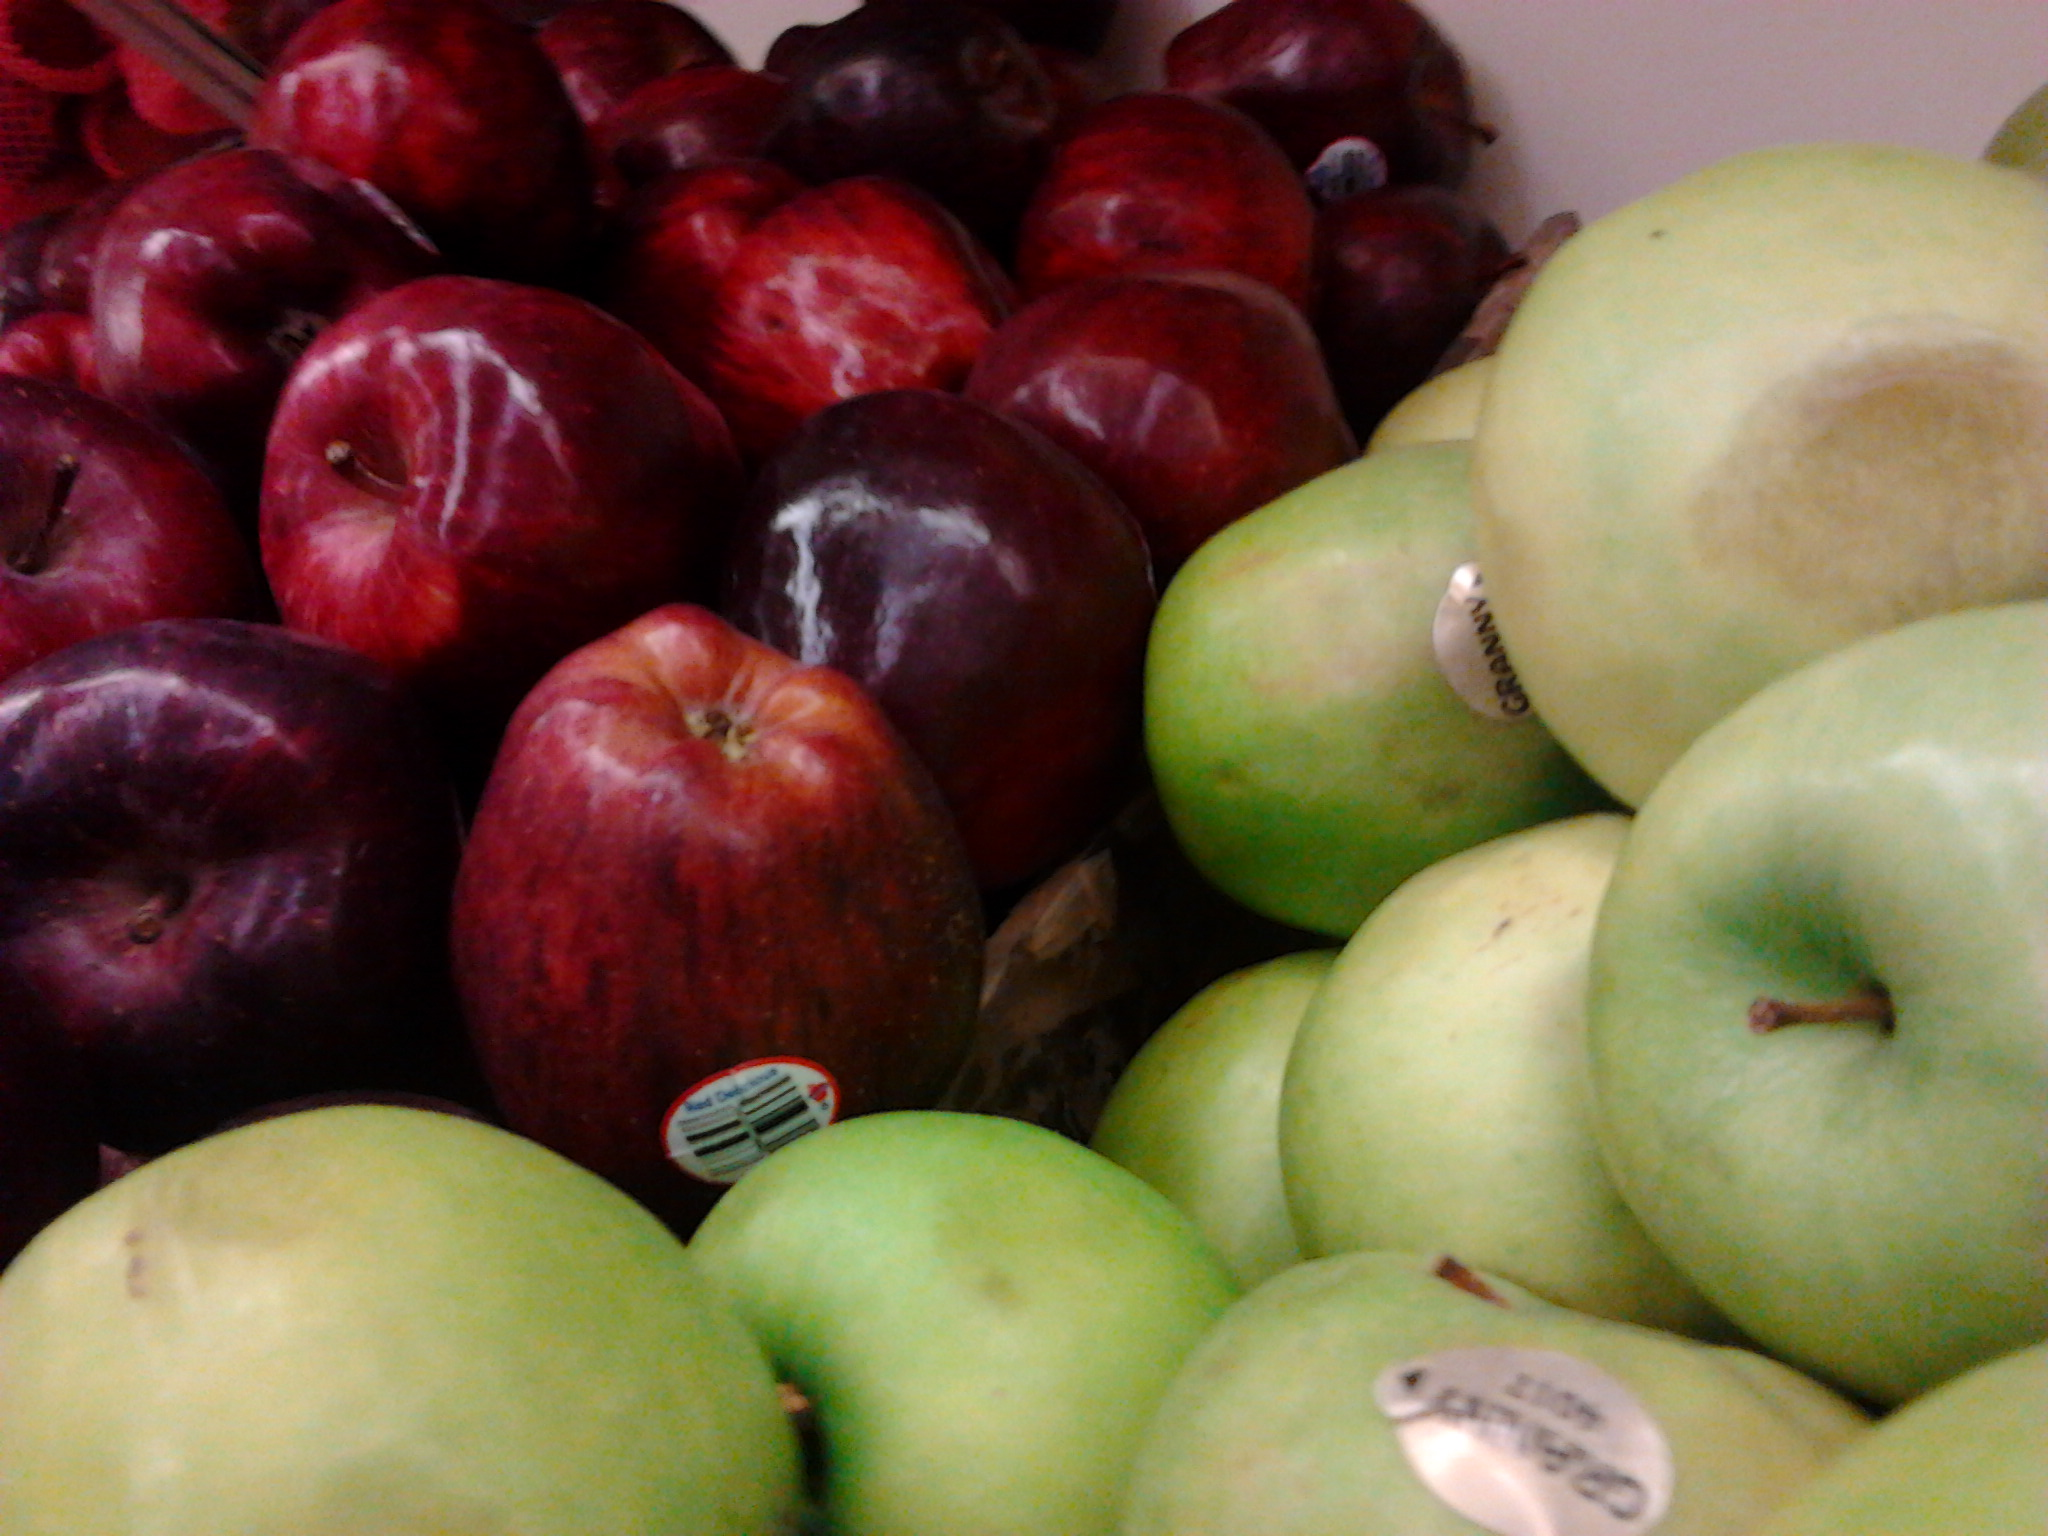 Red And Yellow Apples Name apple - wikipedia, the free encyclopedia